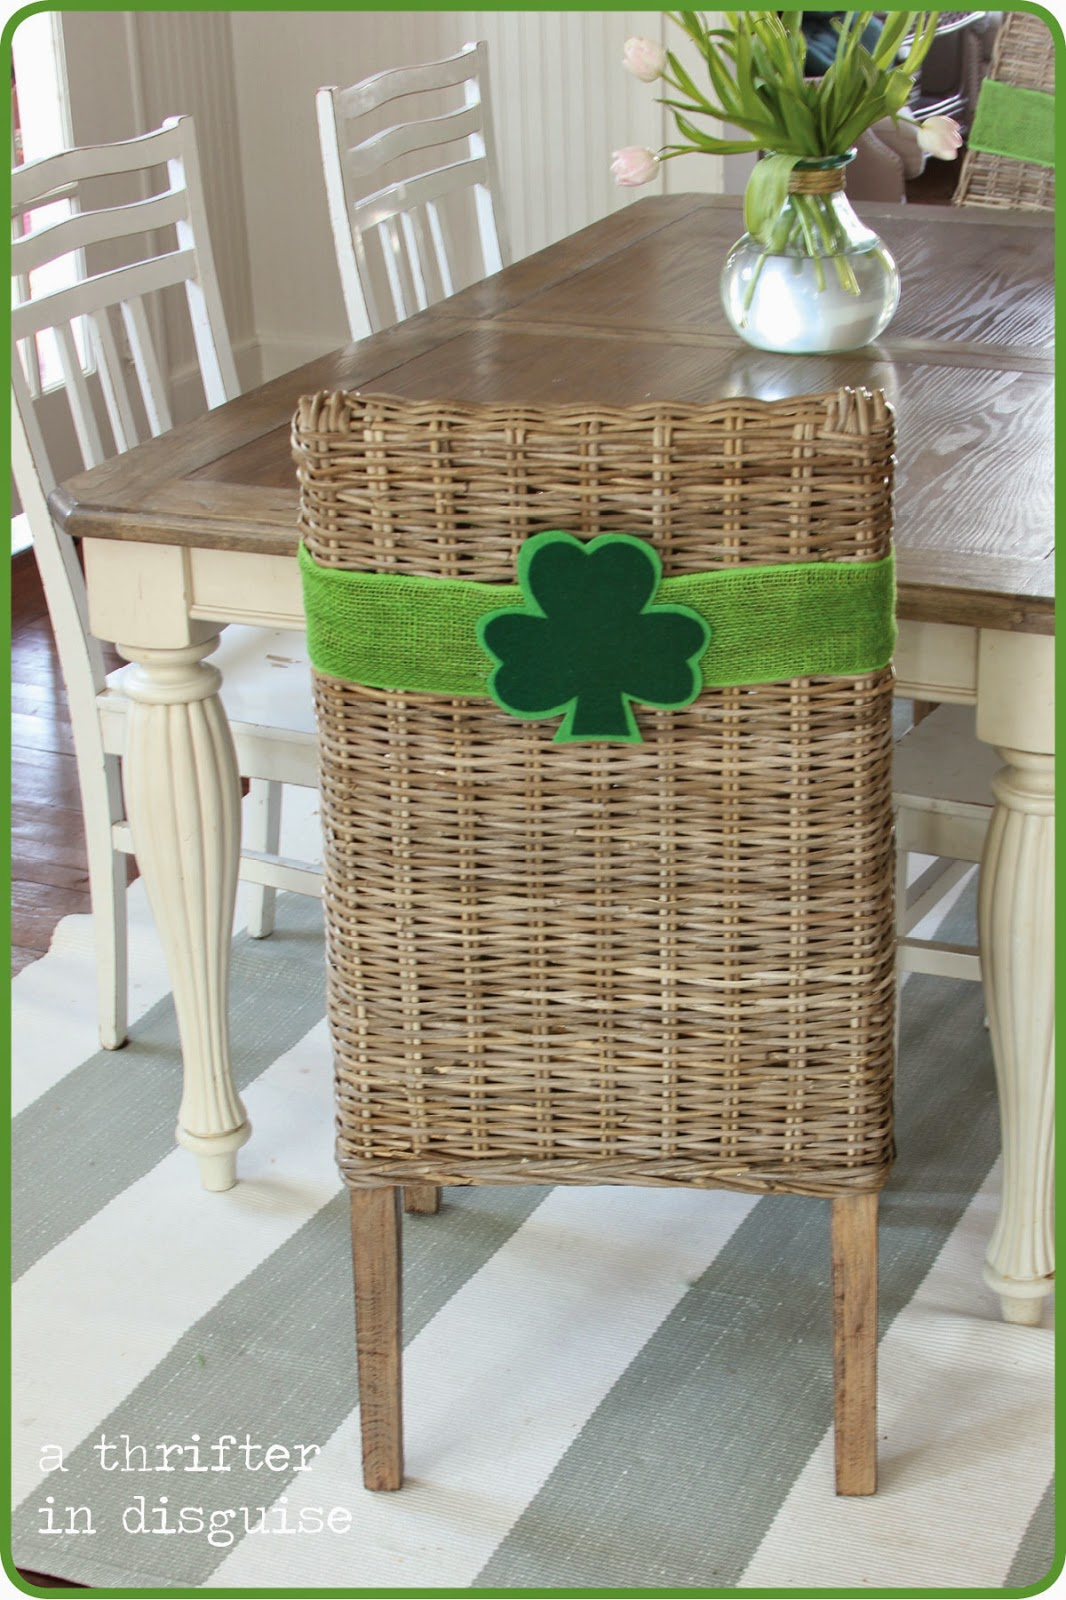 Fancy St. Patrick's Day Decor